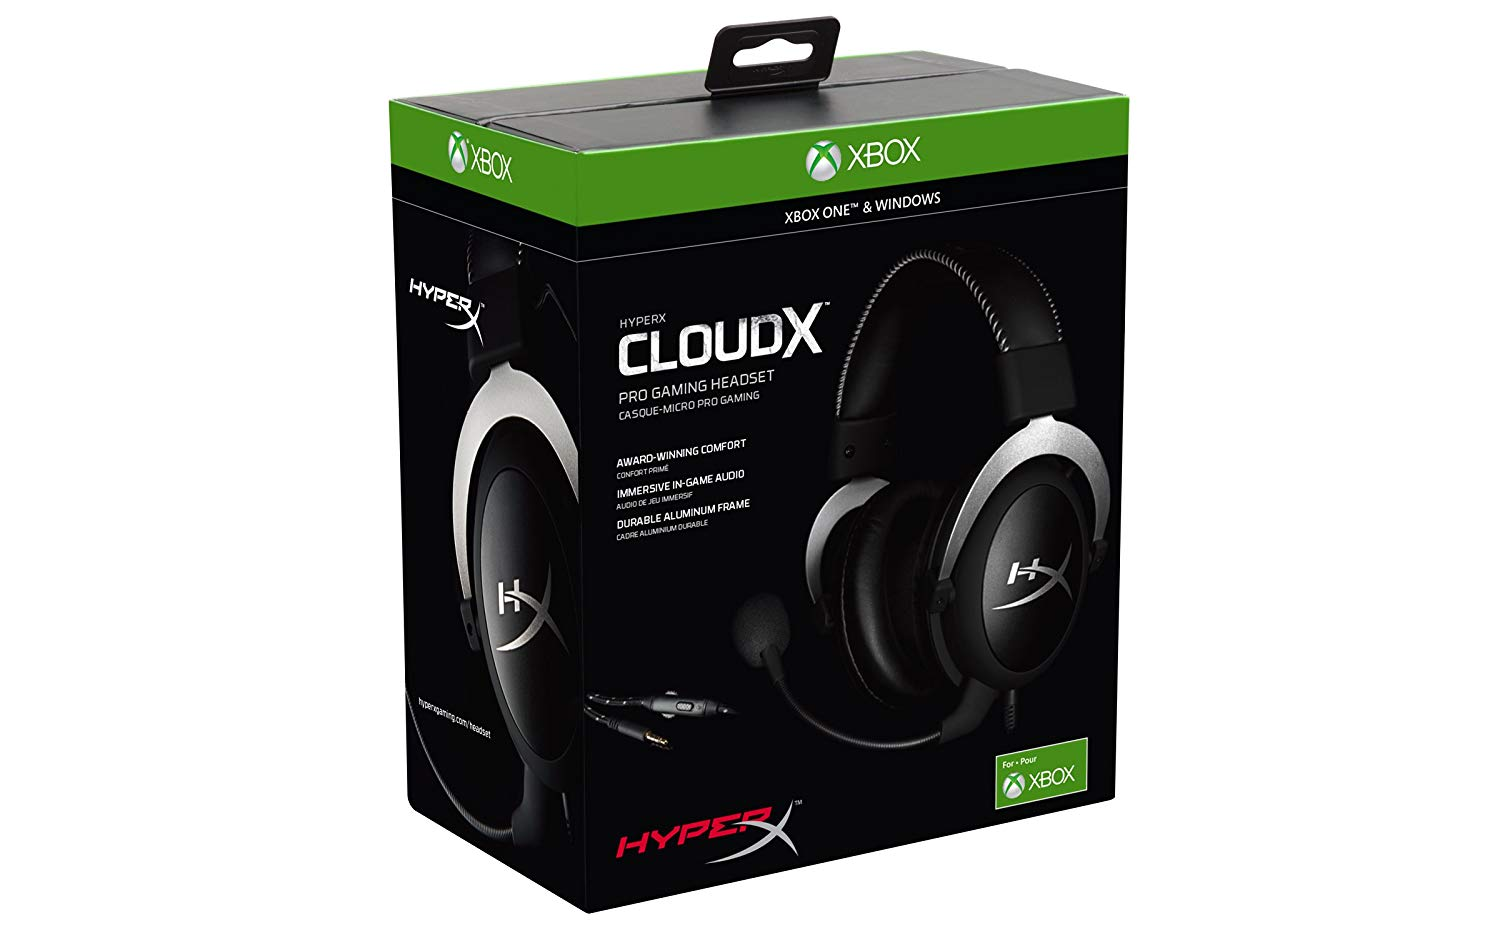 Hyperx Cloud X Gaming Headset (Xbox One)